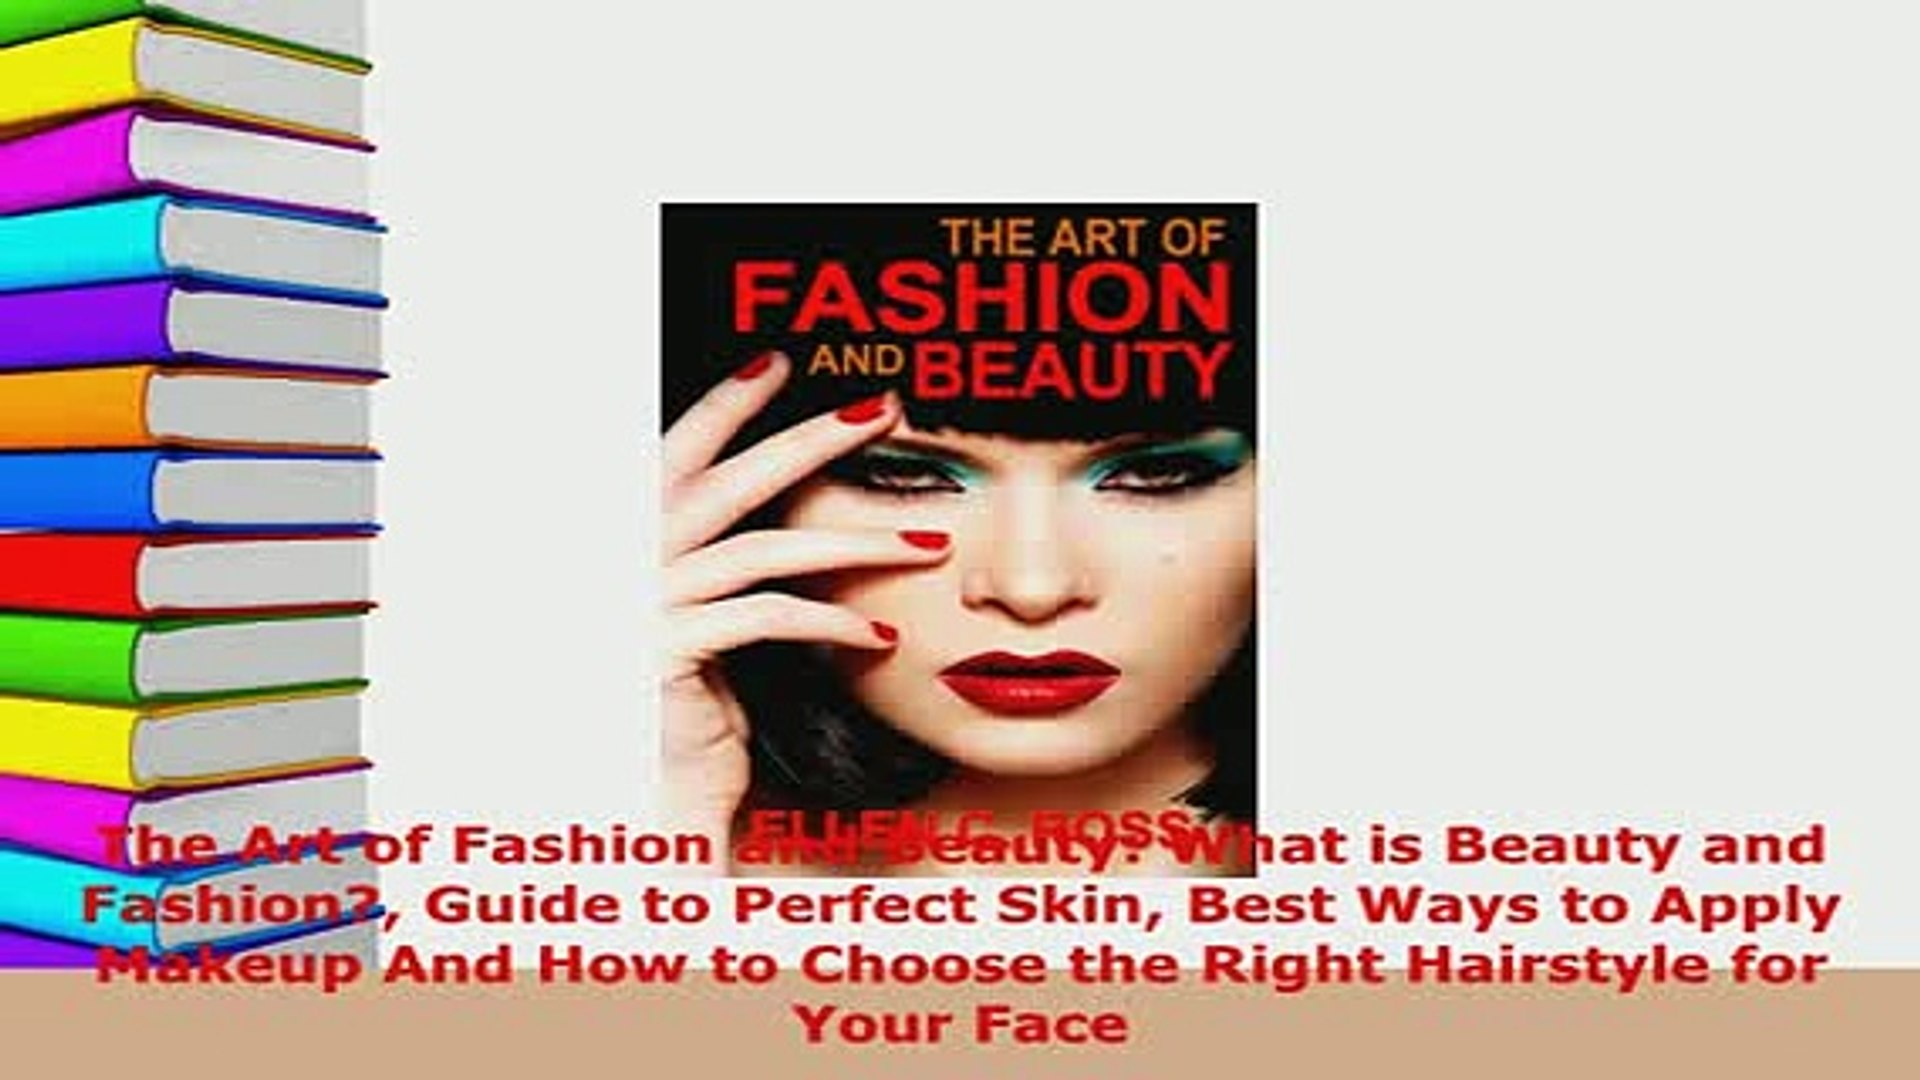 Download  The Art of Fashion and Beauty What is Beauty and Fashion Guide to Perfect Skin Best Ways P